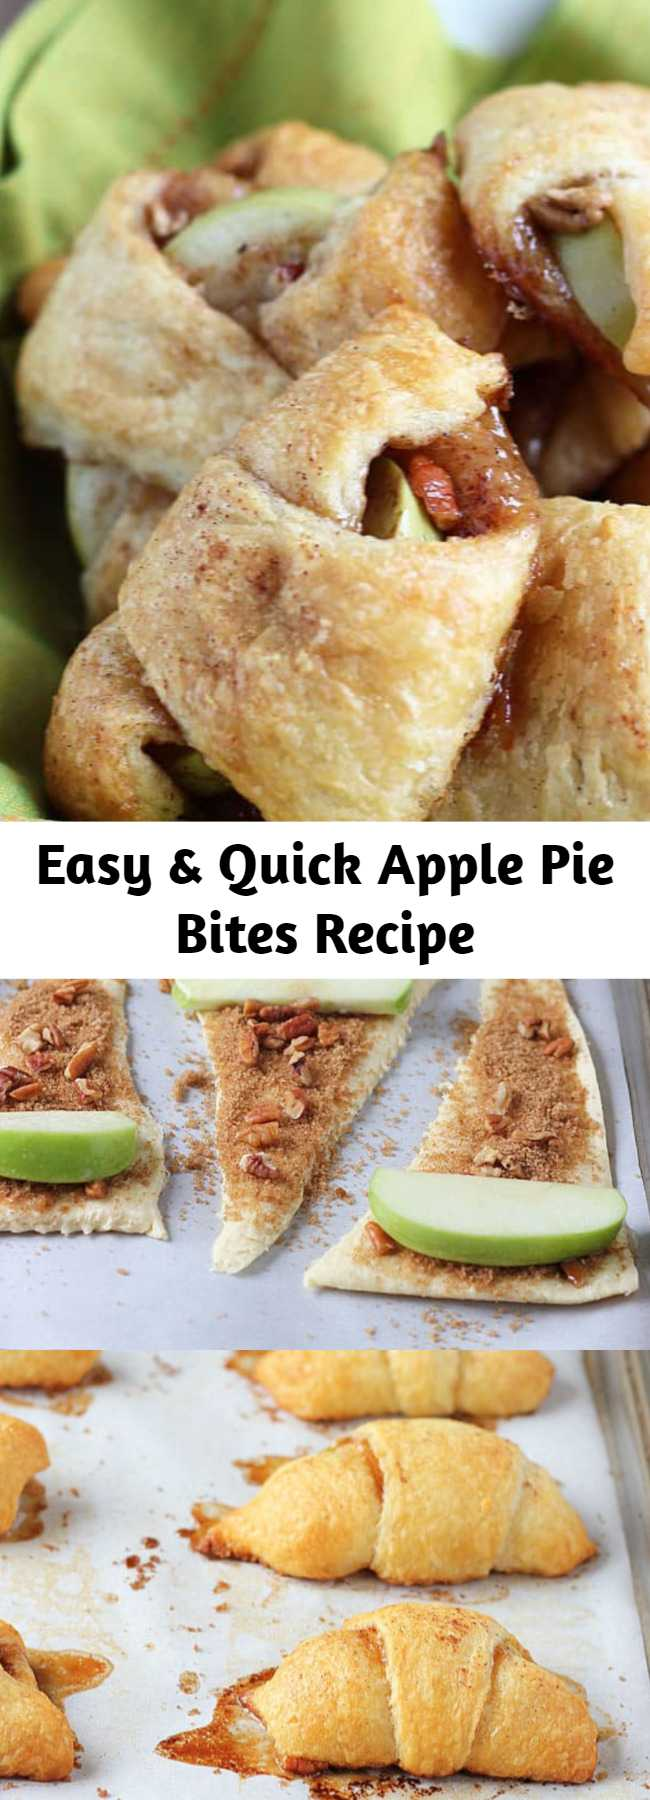 Easy & Quick Apple Pie Bites Recipe - Delicious, quick and easy mini apple pies made with Pillsbury crescent rolls in less than 30 minutes! These incredibly delicious Apple Pie Bites are going to be your go-to apple dessert in a hurry! These taste better than apple pie!!